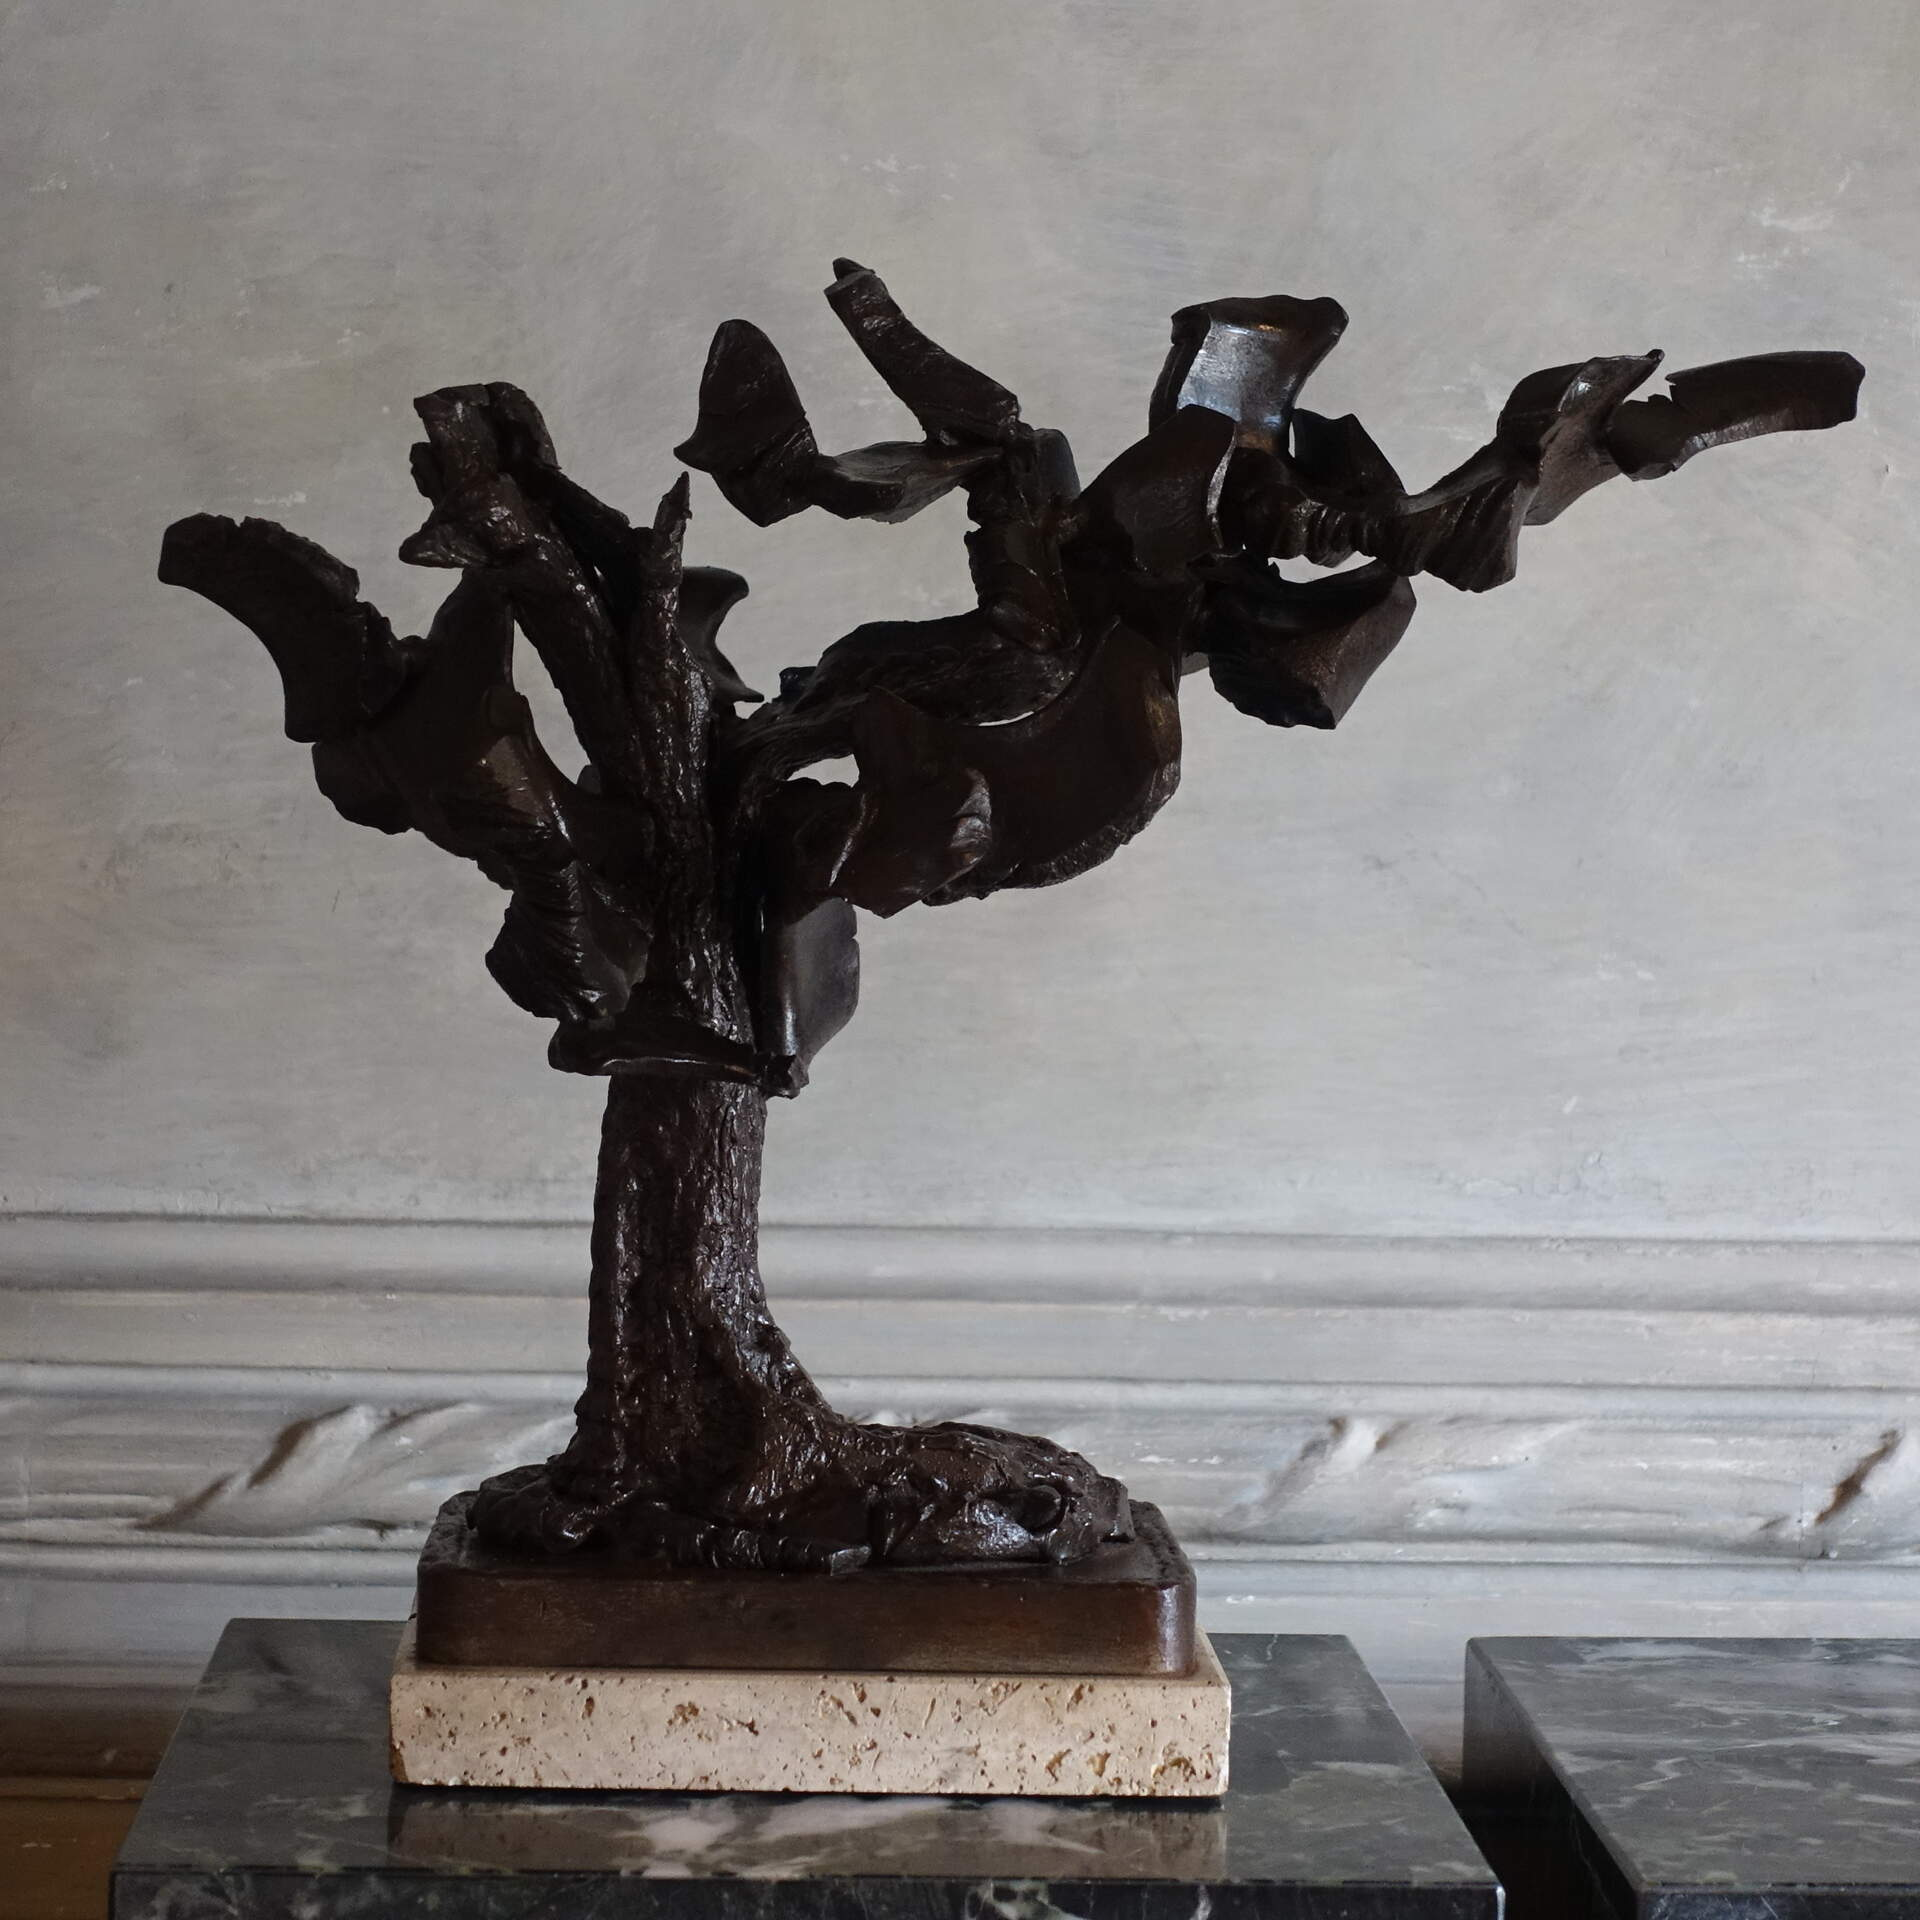 Italian Bronze Sculpture on Travertine Base